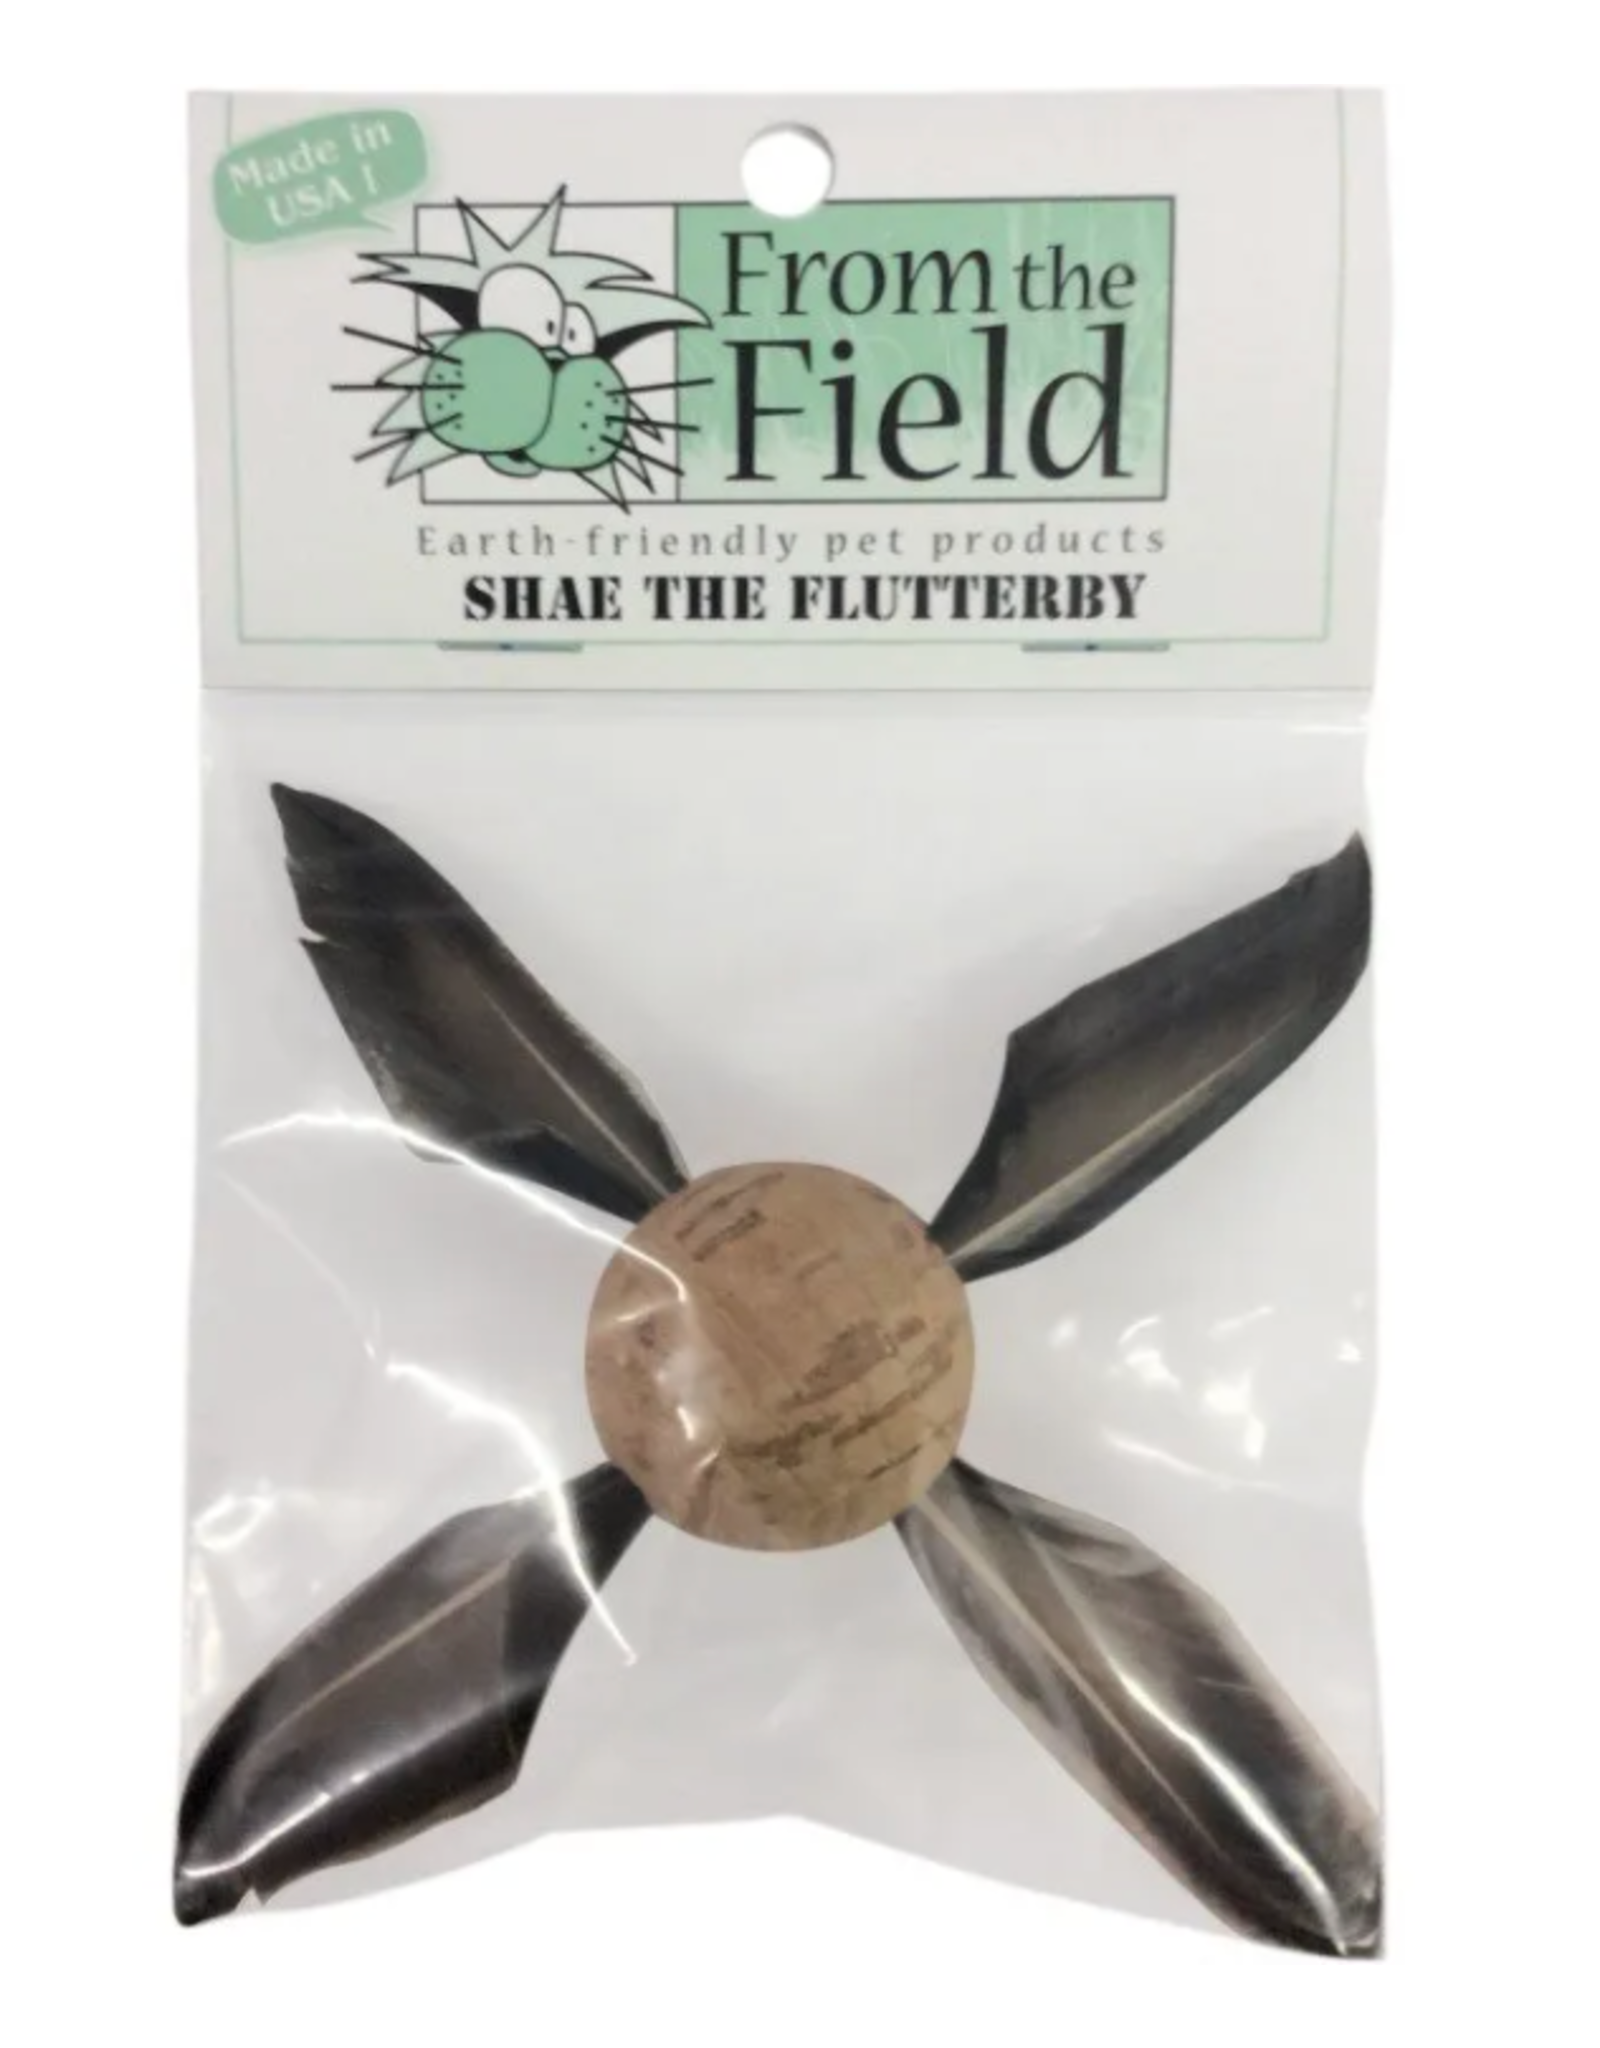 From the Field From the Field Shae the Flutterby